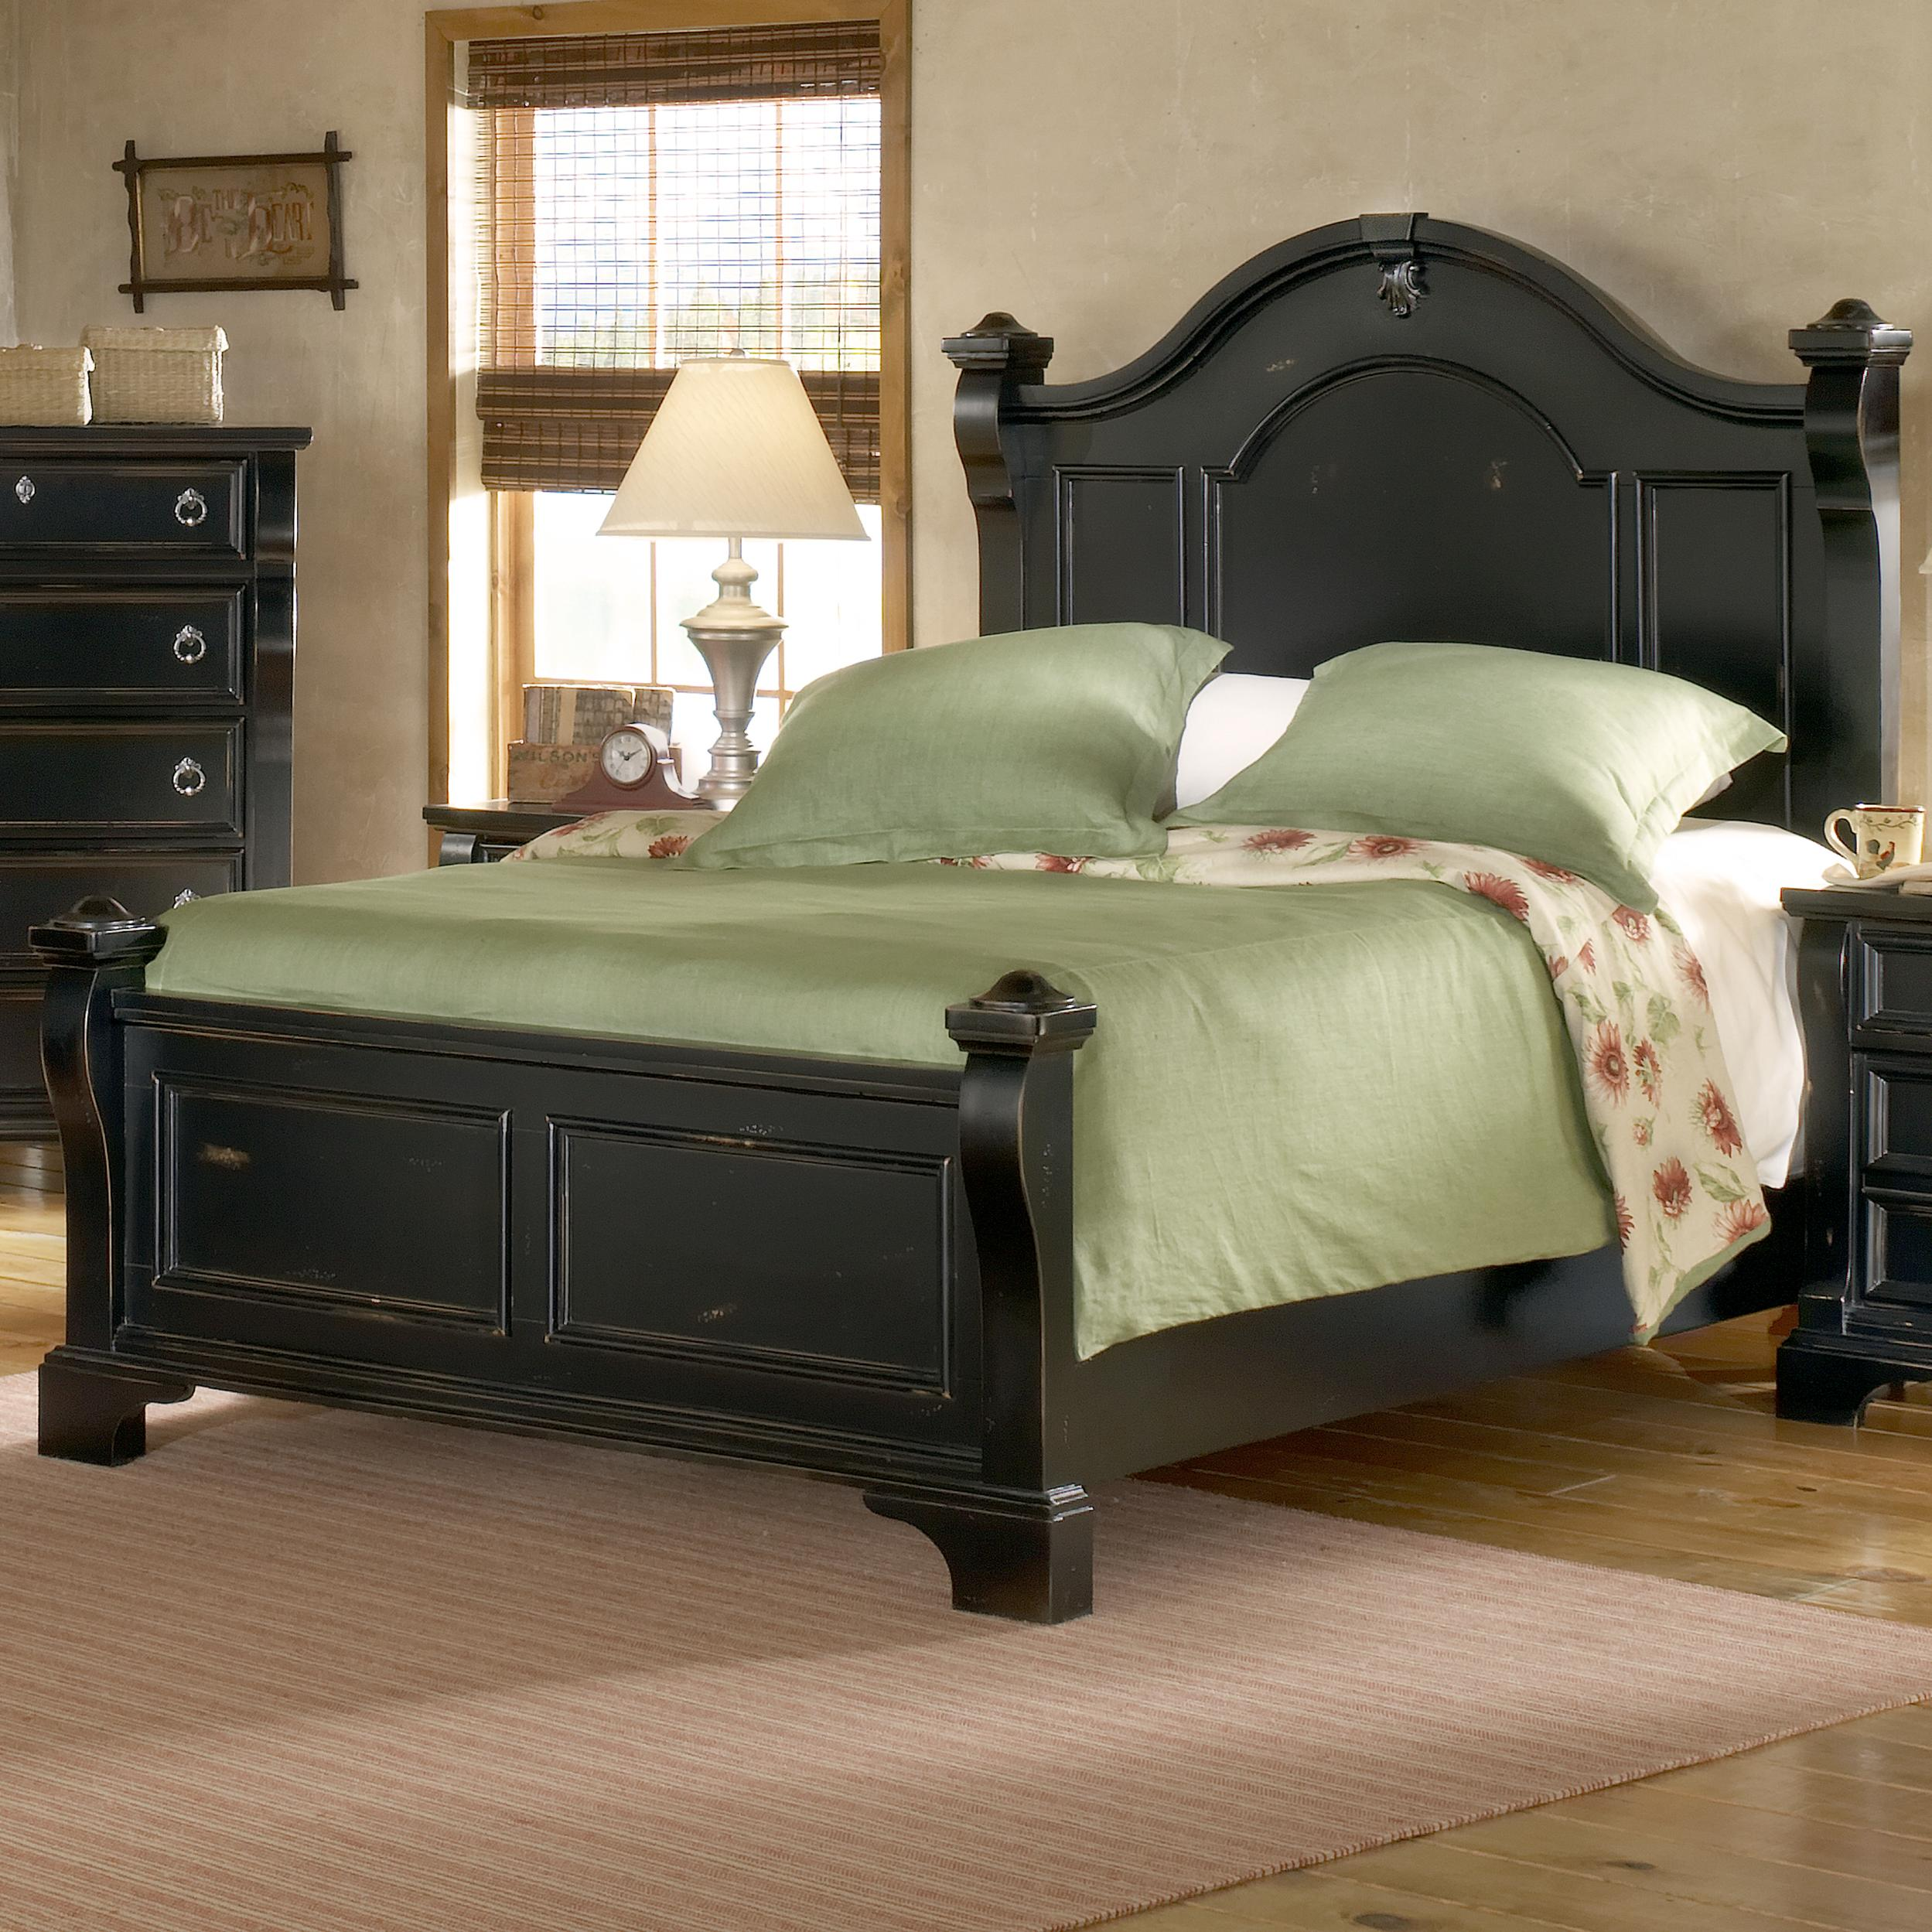 American Woodcrafters Heirloom Queen Poster Bed - Item Number: 2900-951+953+880